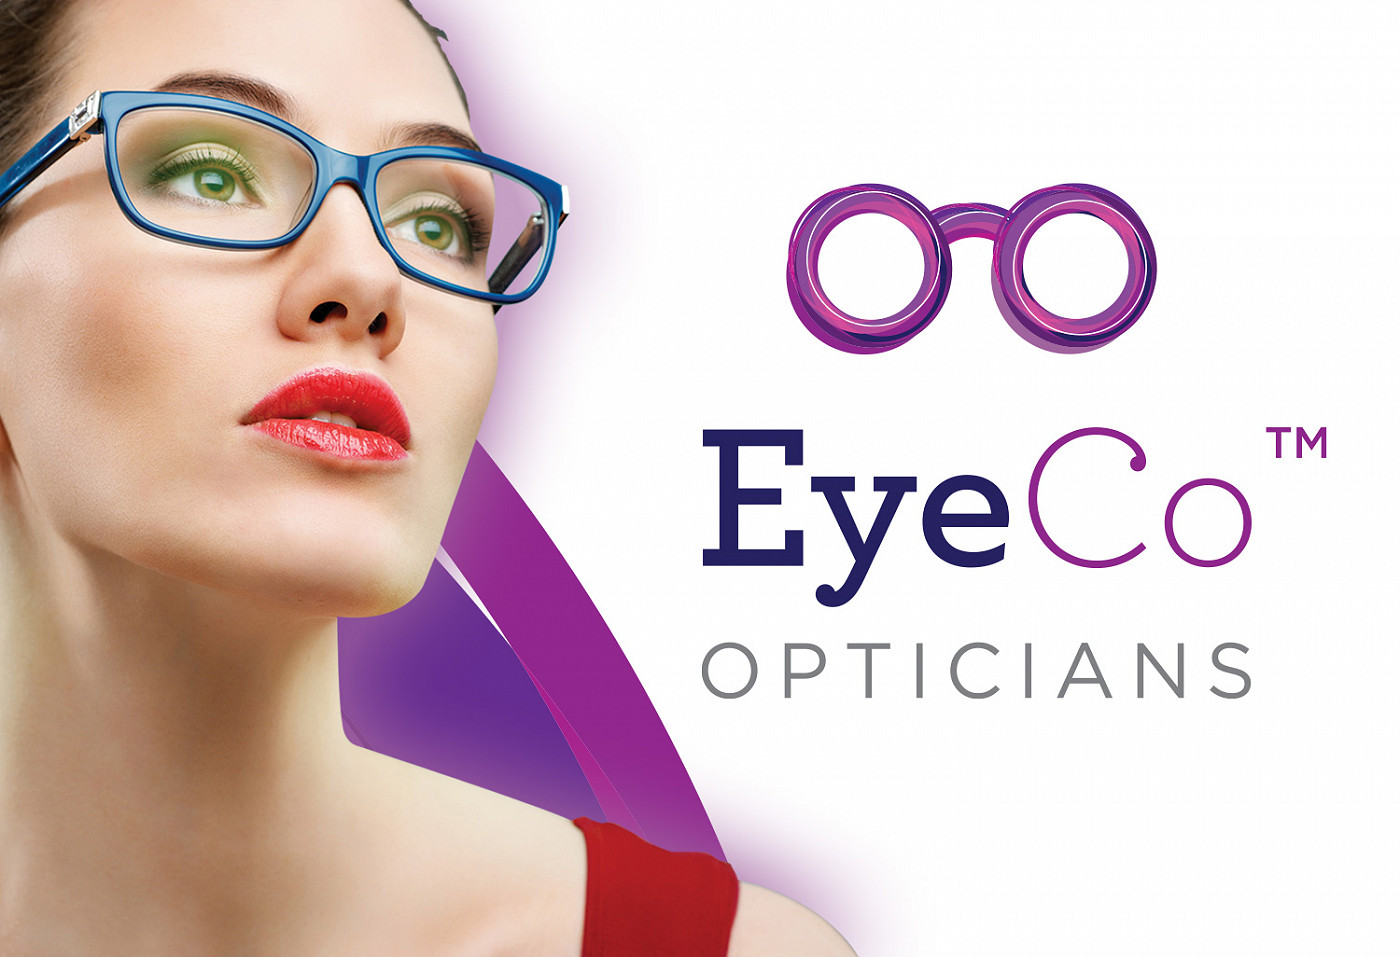 Eyeco Opticians Brand Design